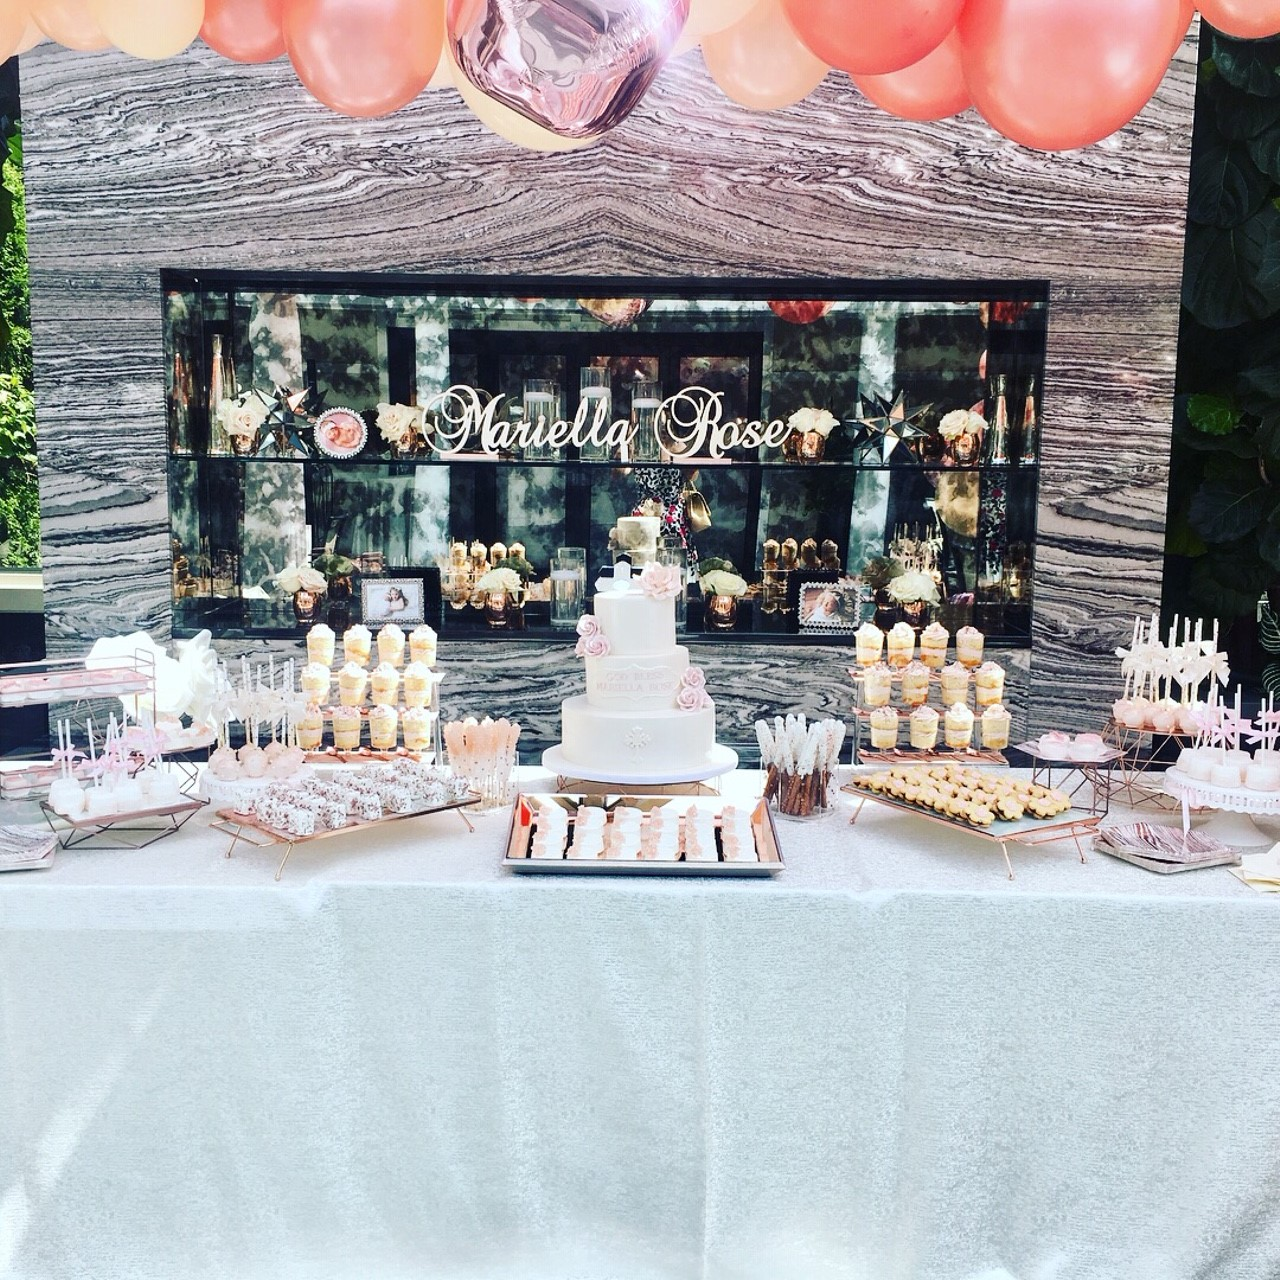 Christening Treat Table